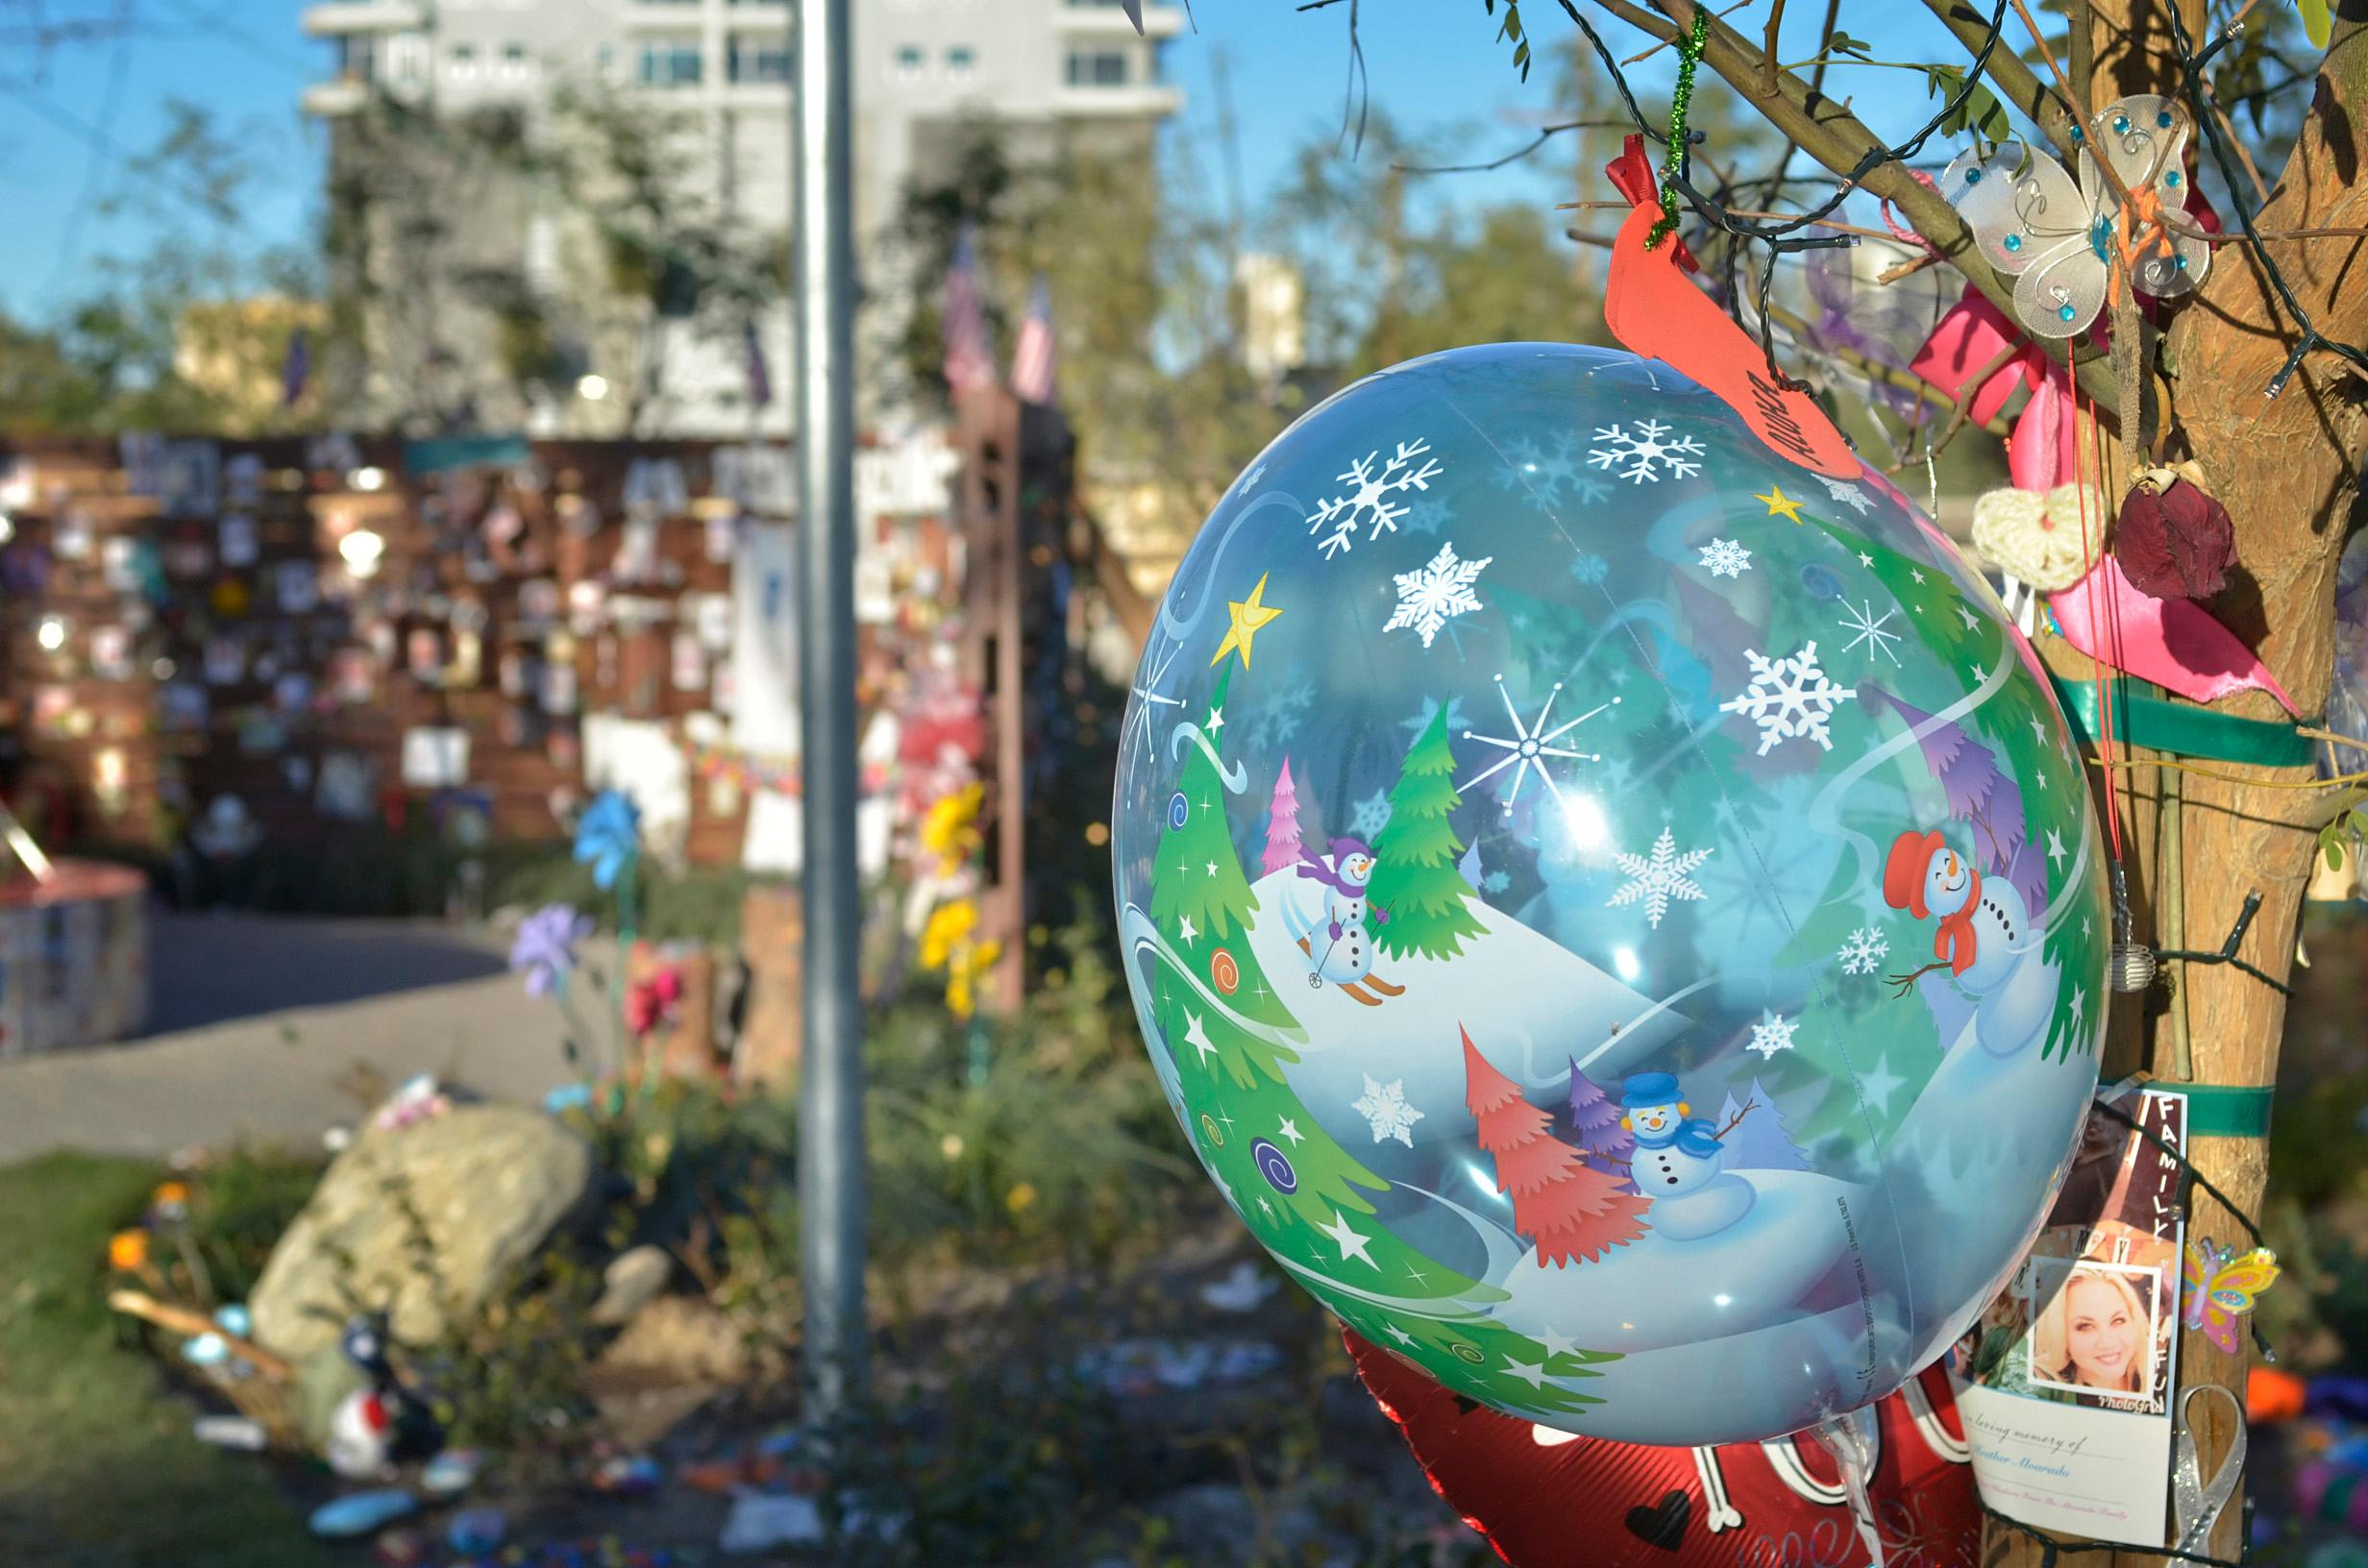 A Christmas decoration is shown at the Remembrance Wall in the Community Healing Garden at 1015 S. Casino Center Blvd. in Las Vegas on Tuesday, Dec. 12, 2017. CREDIT: Bill Hughes/Las Vegas News Bureau